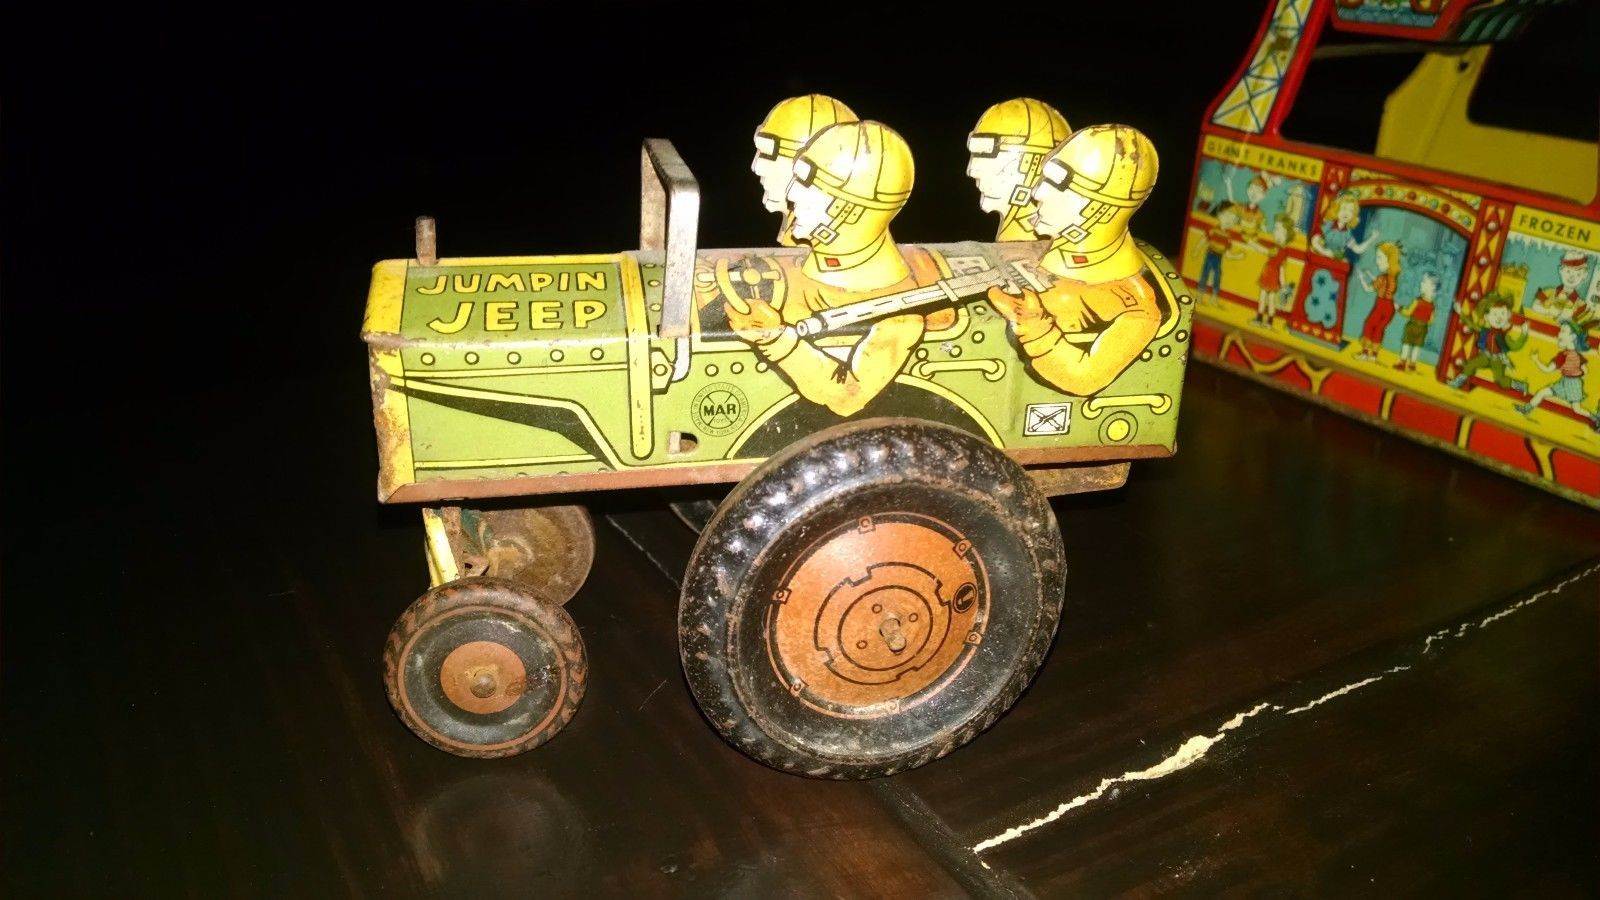 Jeep toys images  toys vintagetoys Jumpin Jeep  C Wind up Toy vintage  Vintage